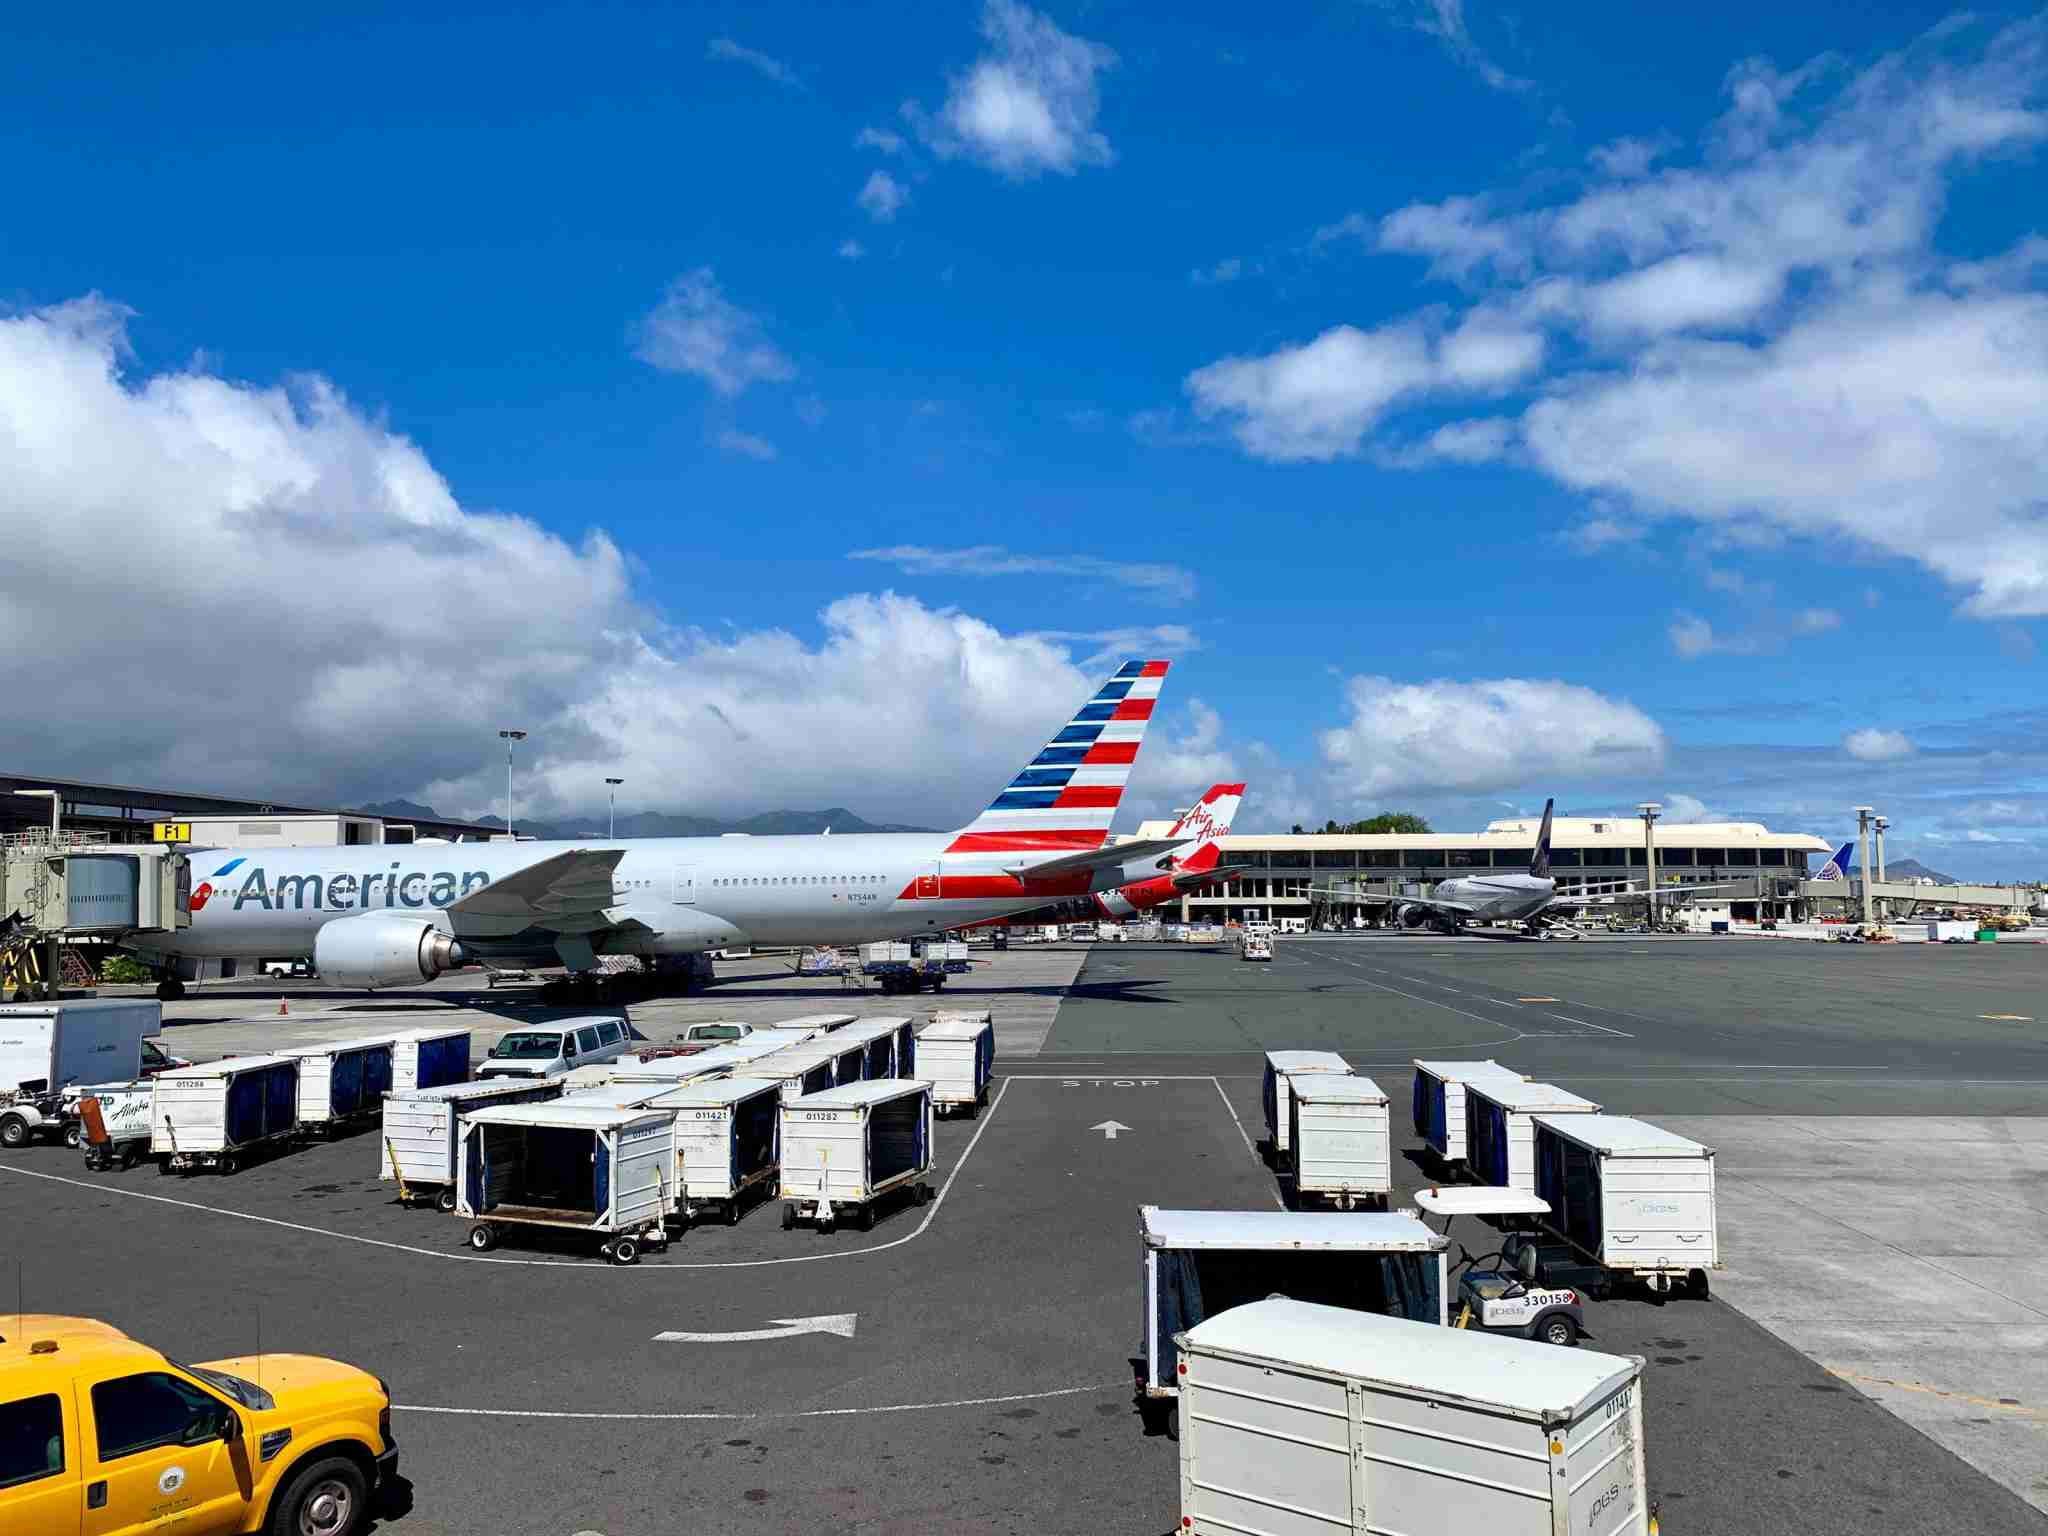 american-airlines-aa-air-asia-tails-airport-honolulu-hawaii-hnl